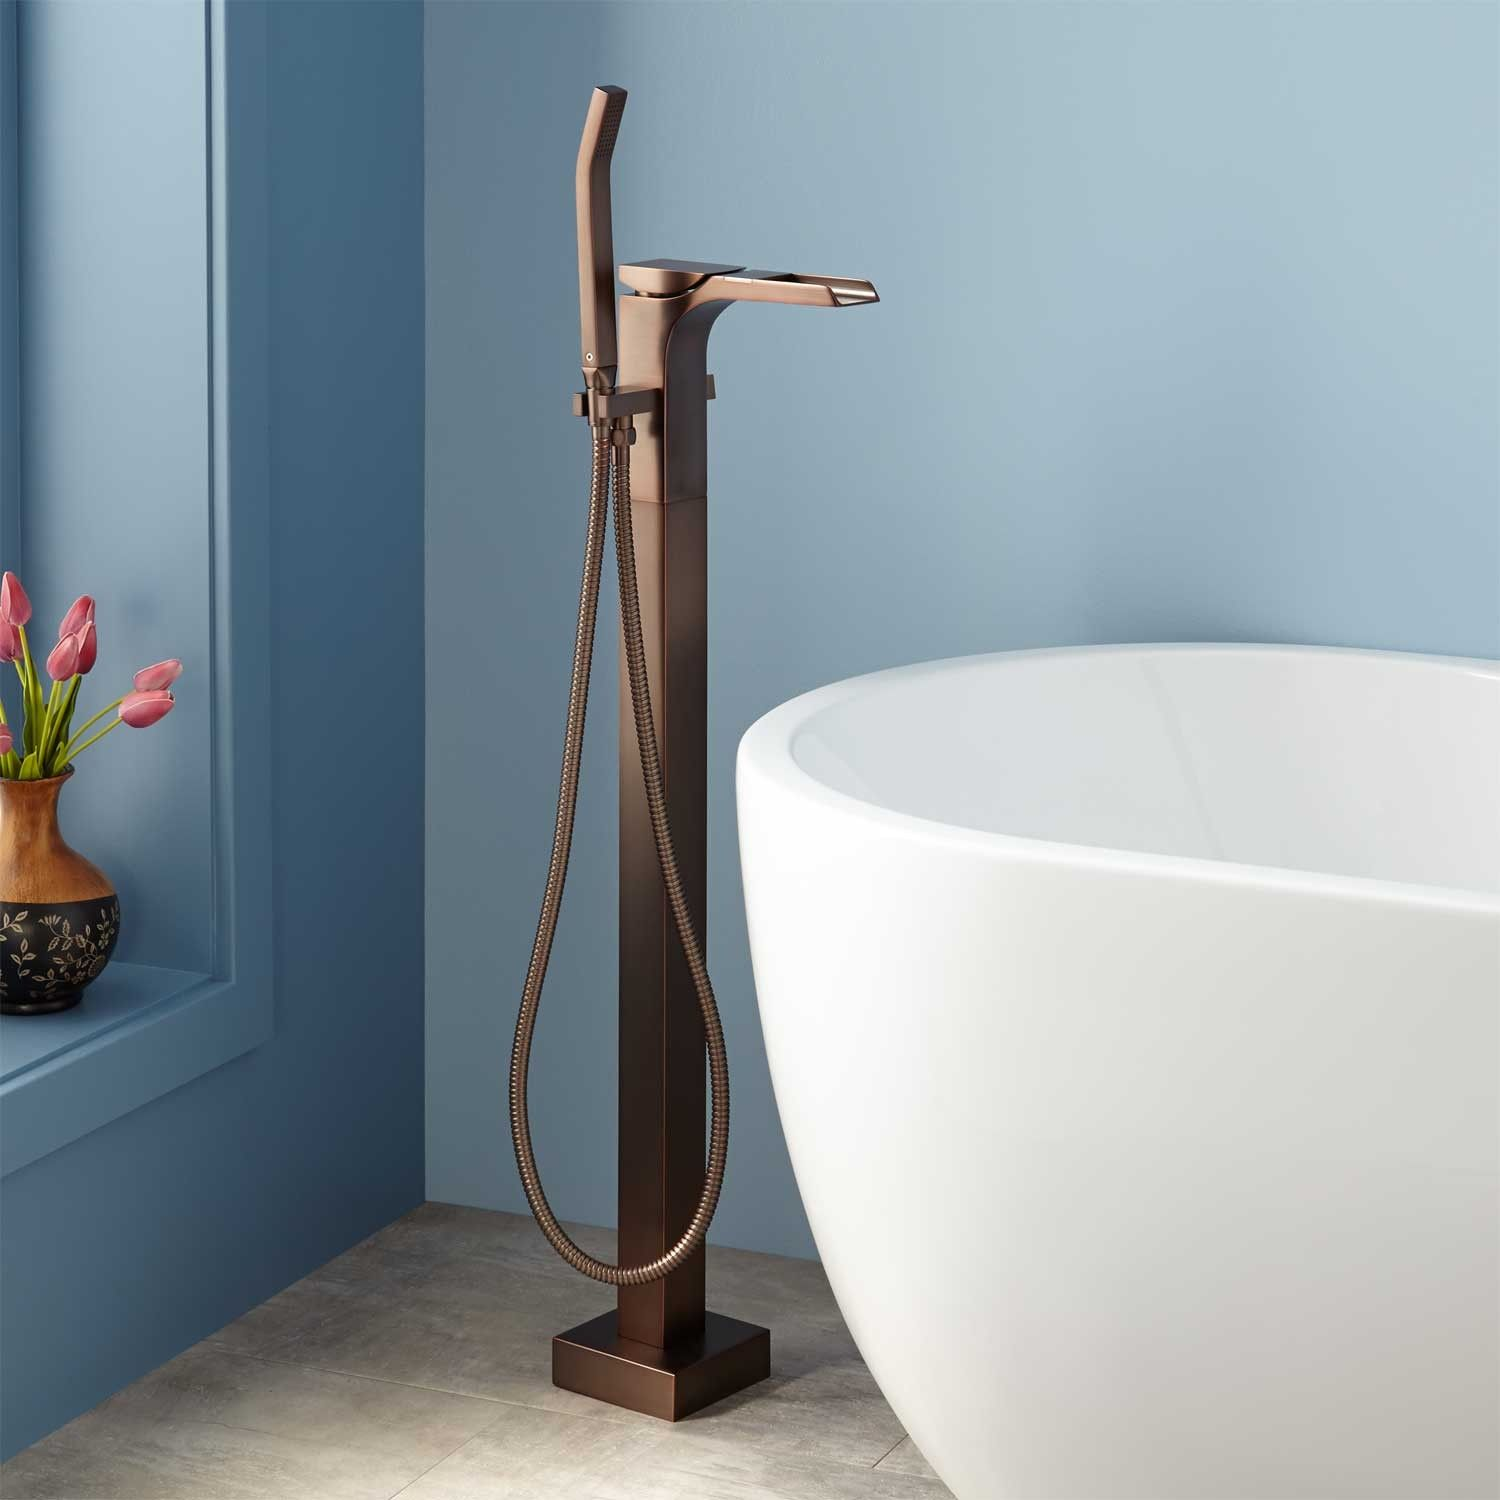 Willis Freestanding Waterfall Tub Faucet | Tubs, Faucet and ...